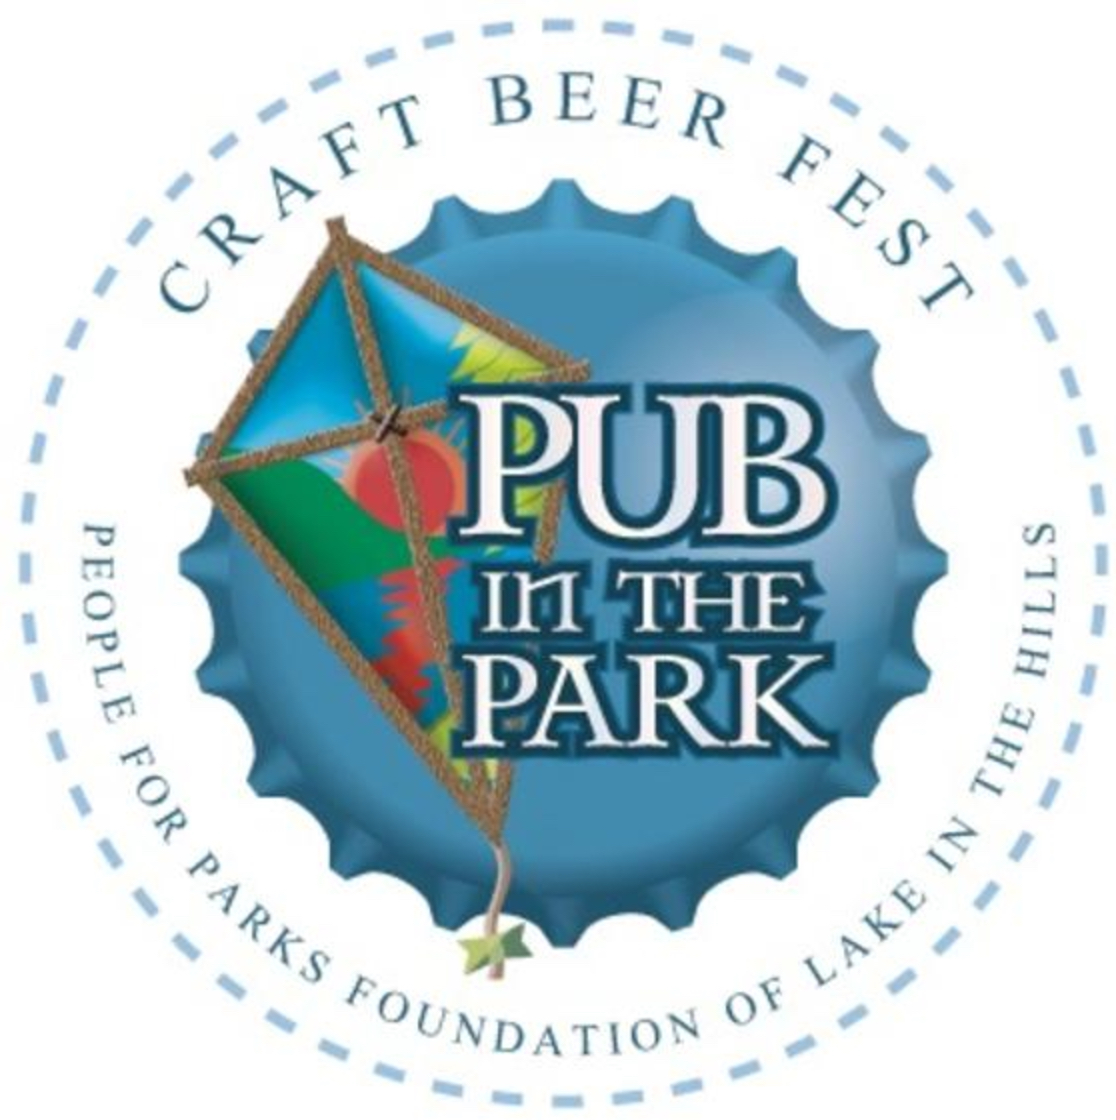 - Pub in the Park Craft Beer & Food Truck Festival with live entertainment5200 Miller Road, Lake in the Hills at Miller, Lakewood & Haligus Roads